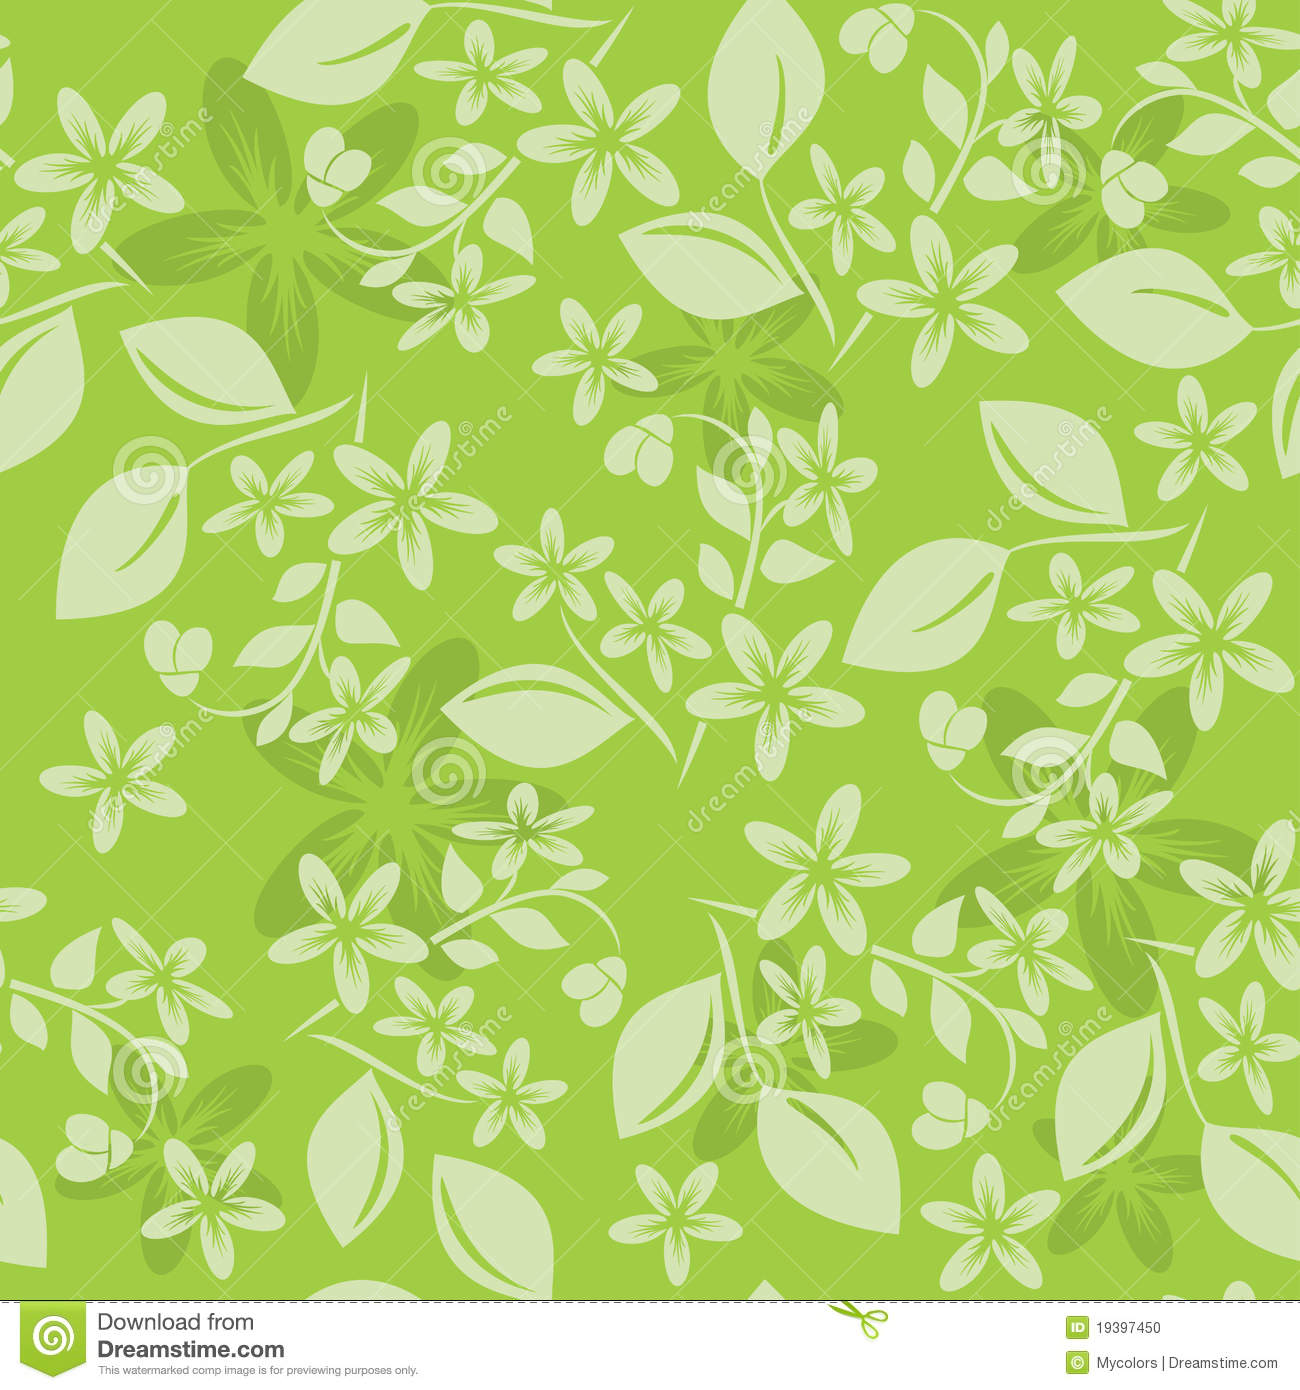 Light Green Floral Pattern - Vector Stock Vector - Image ...